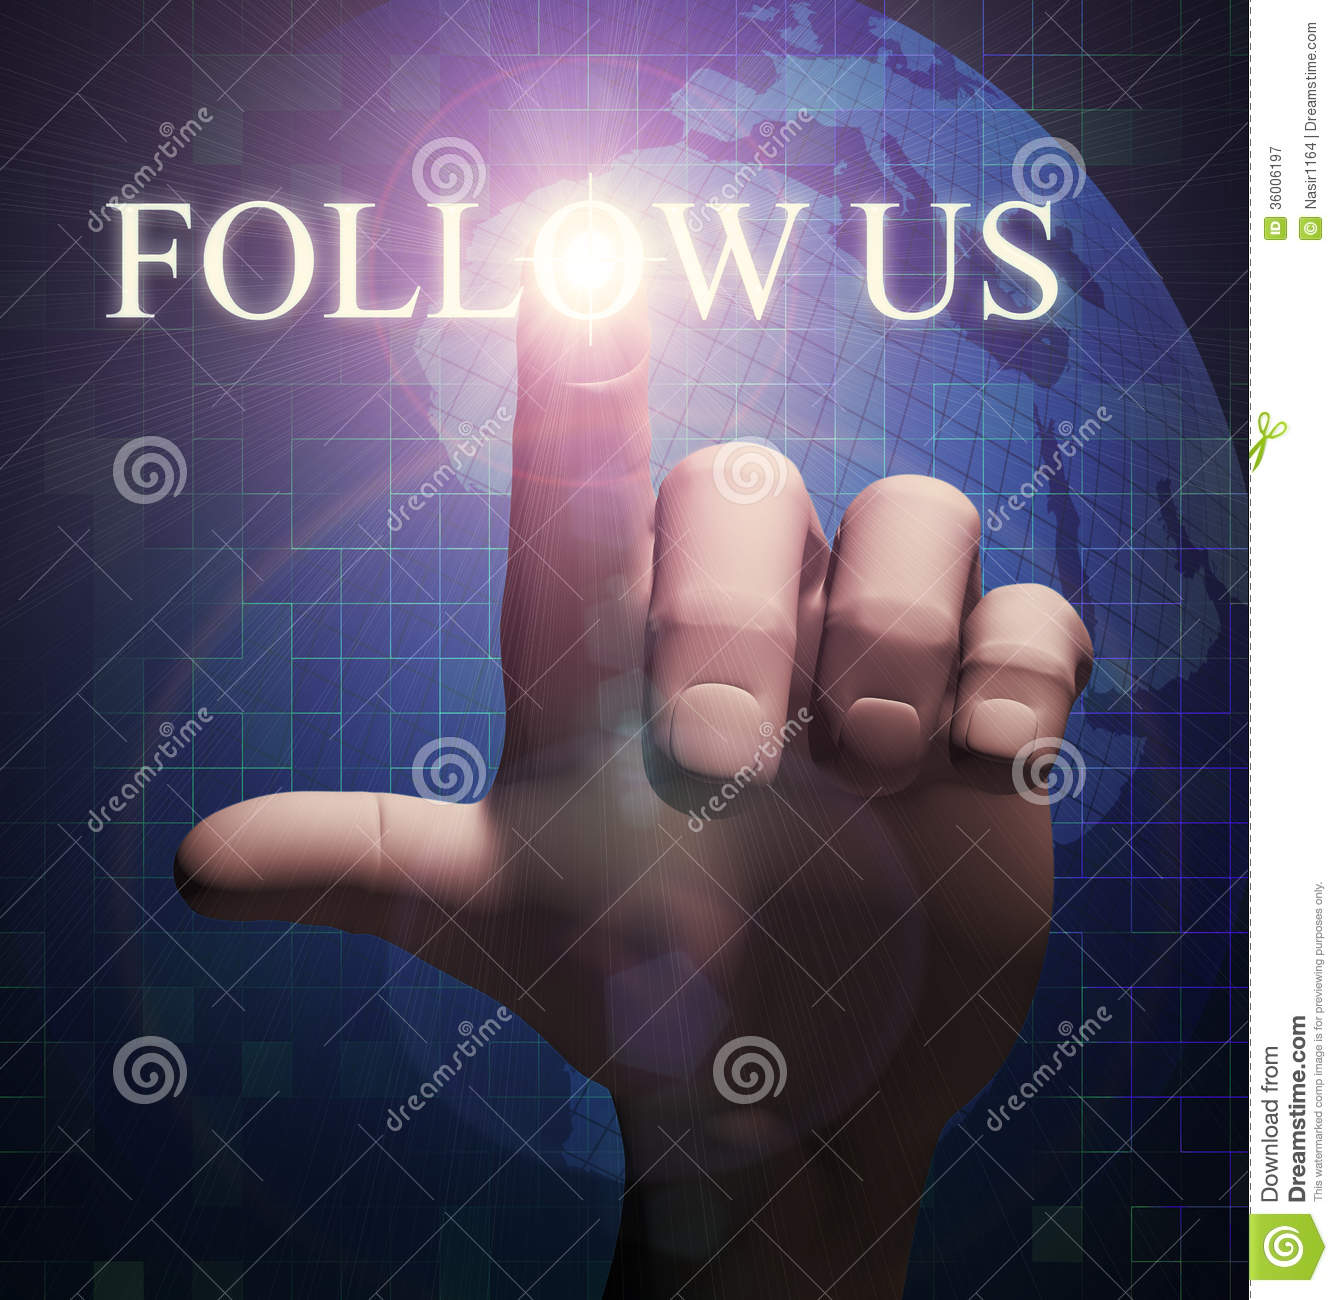 3d Finger Touching Follow Us Illustration Royalty Free